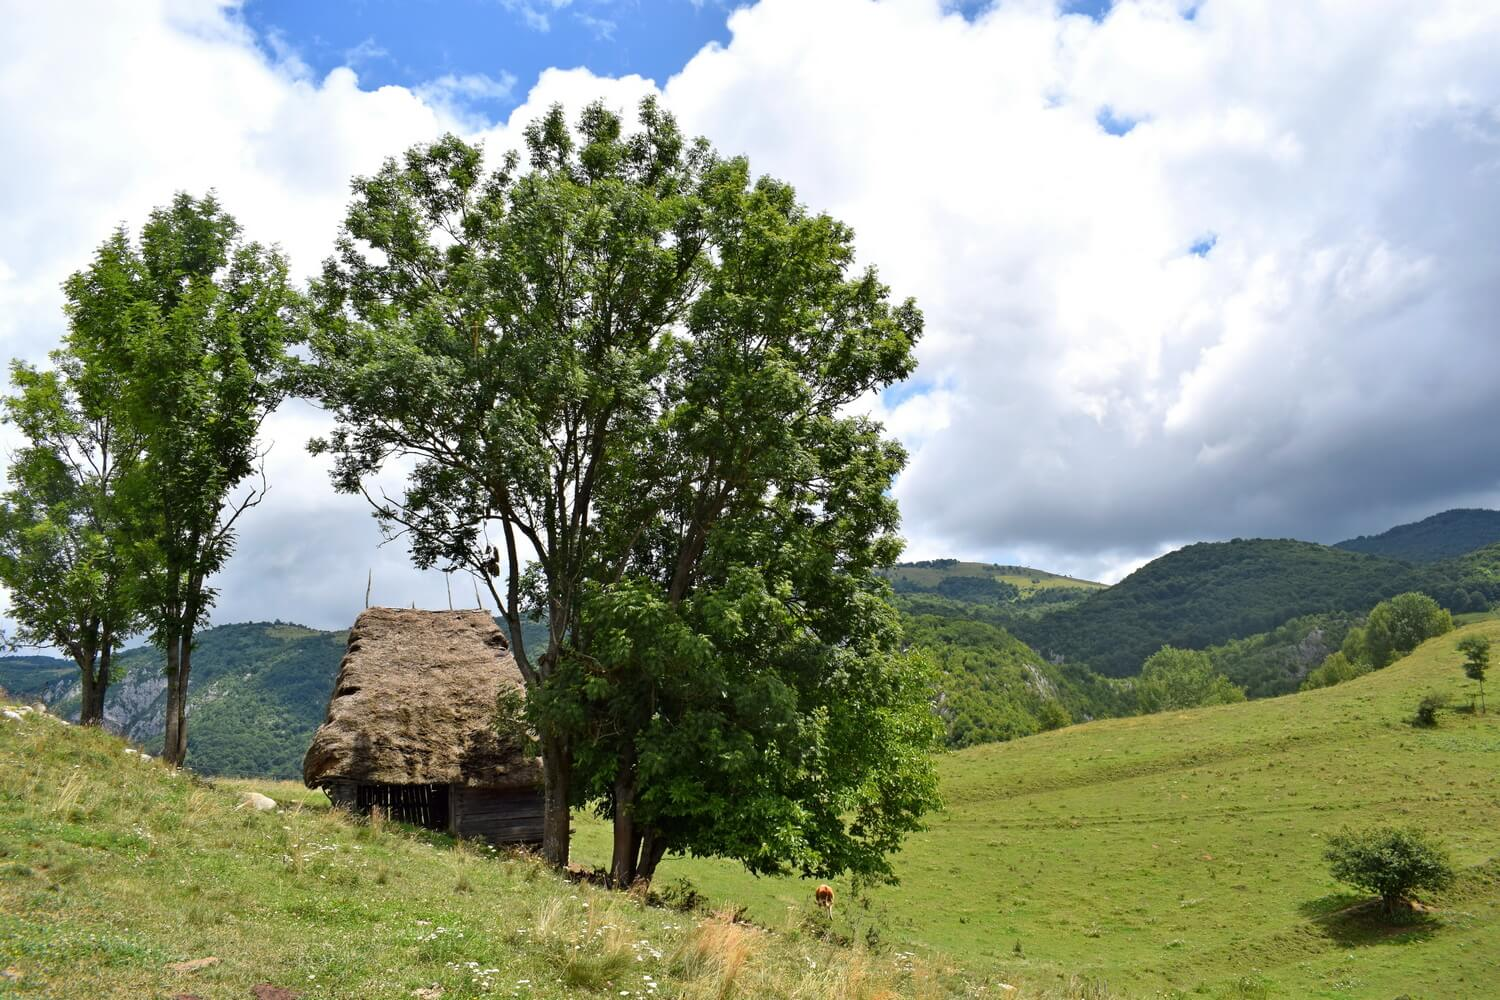 cattle shelter in Apuseni Mountains